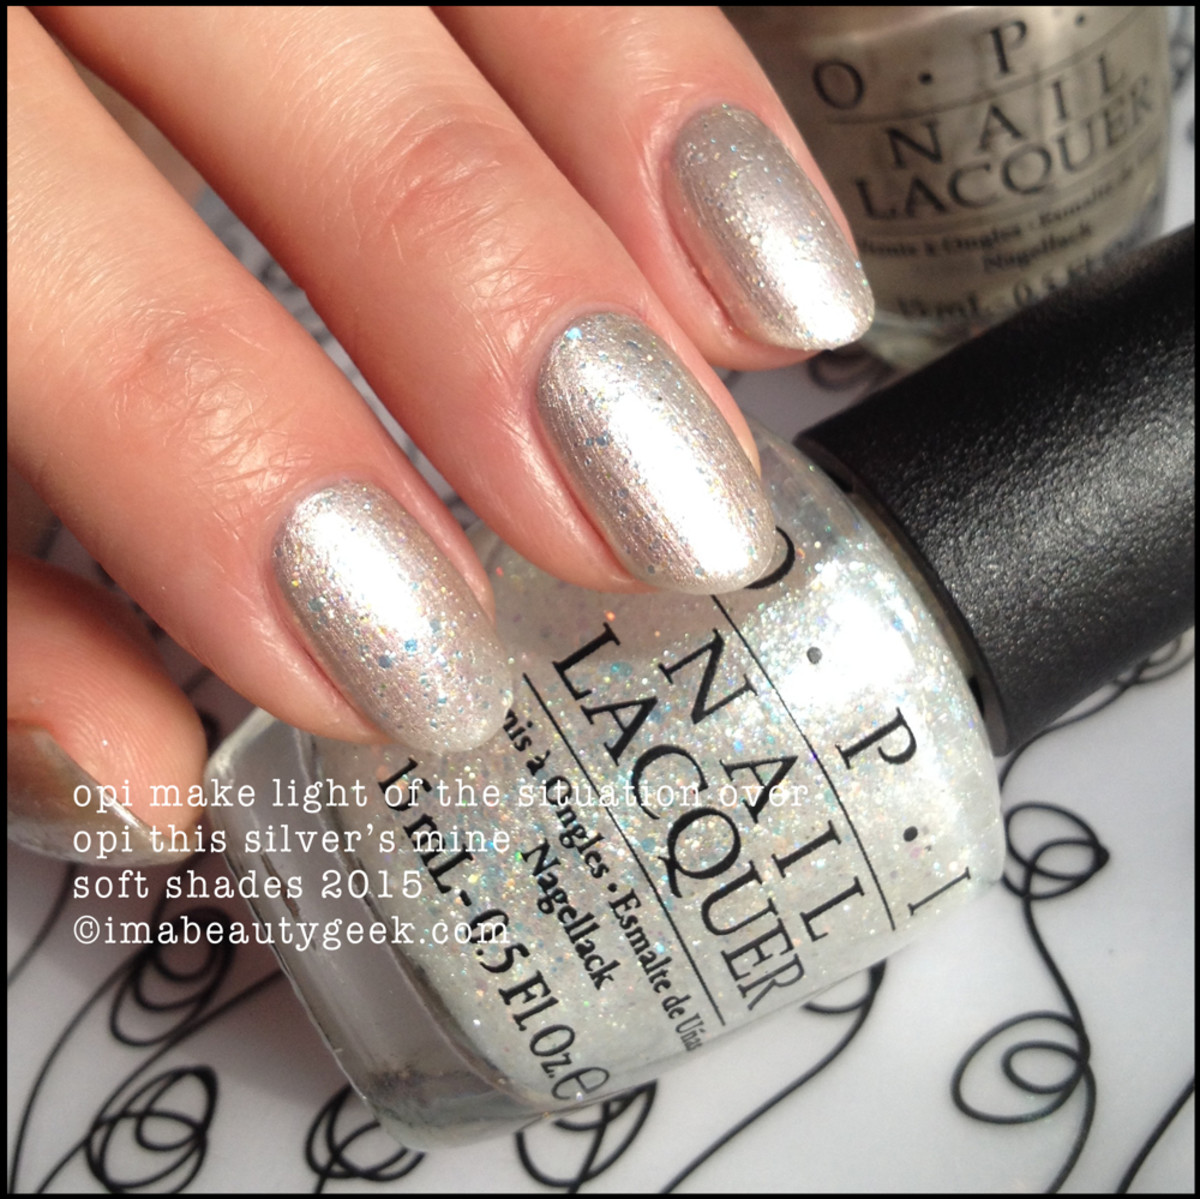 OPI Make Light of the Situation over OPI This Silver's Mine 2015